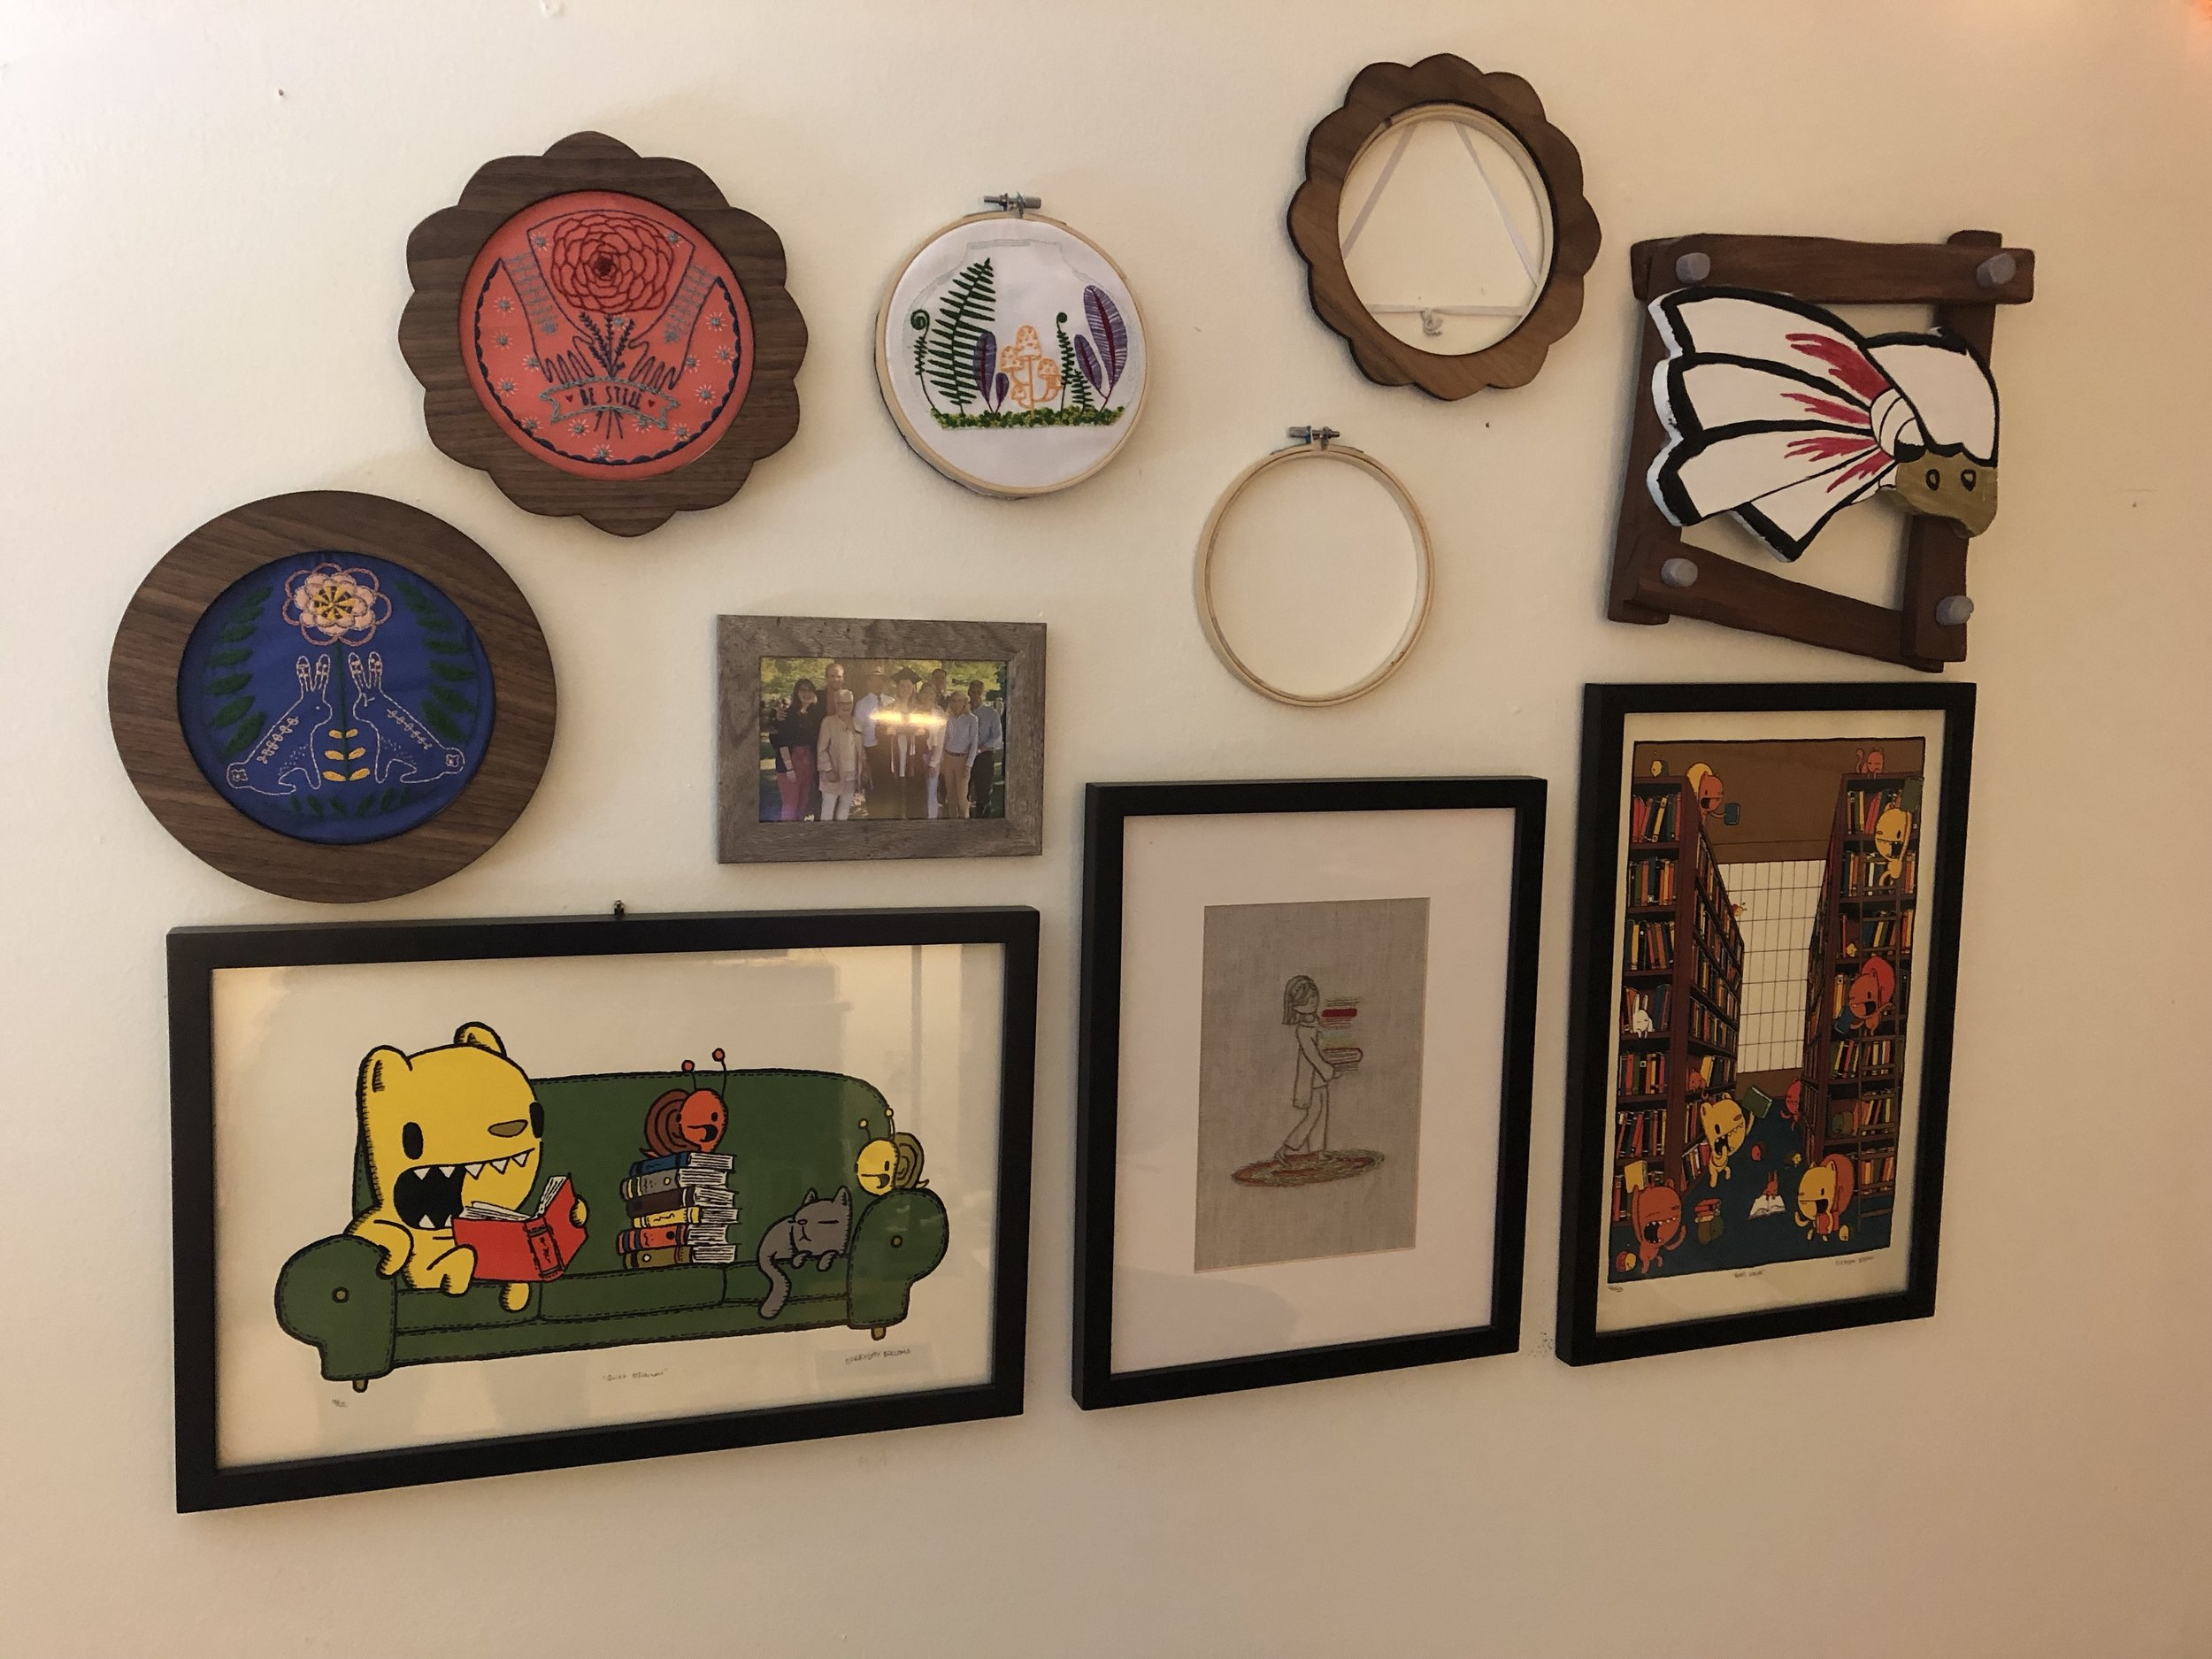 My new wall, filled with my embroidery projects.